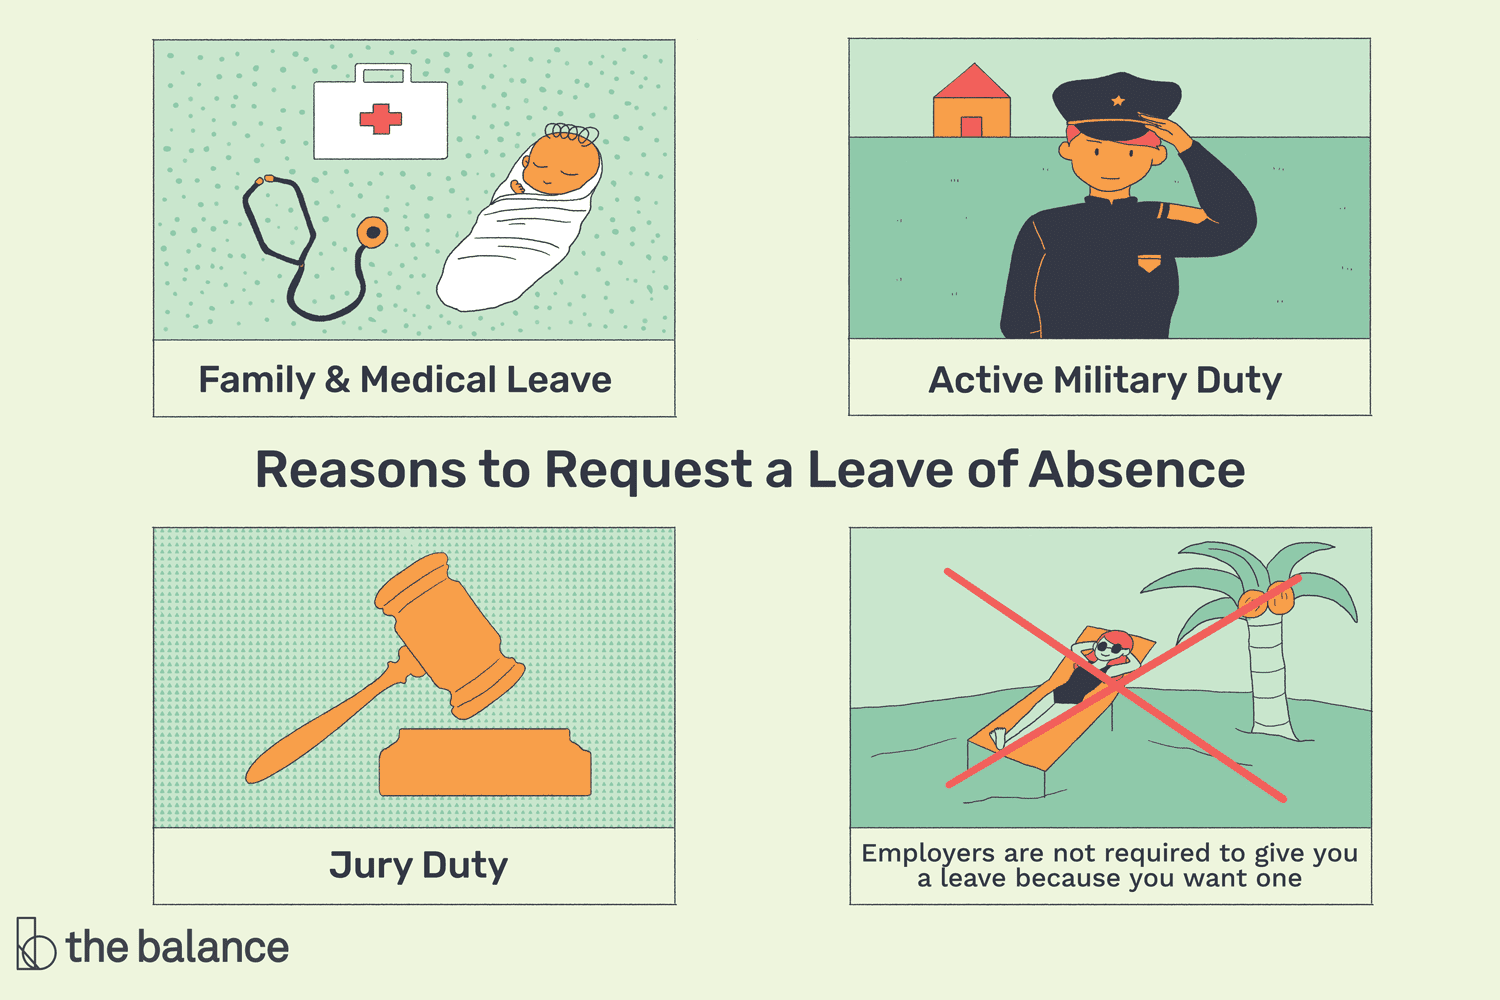 How to Request a Leave of Absence From Work